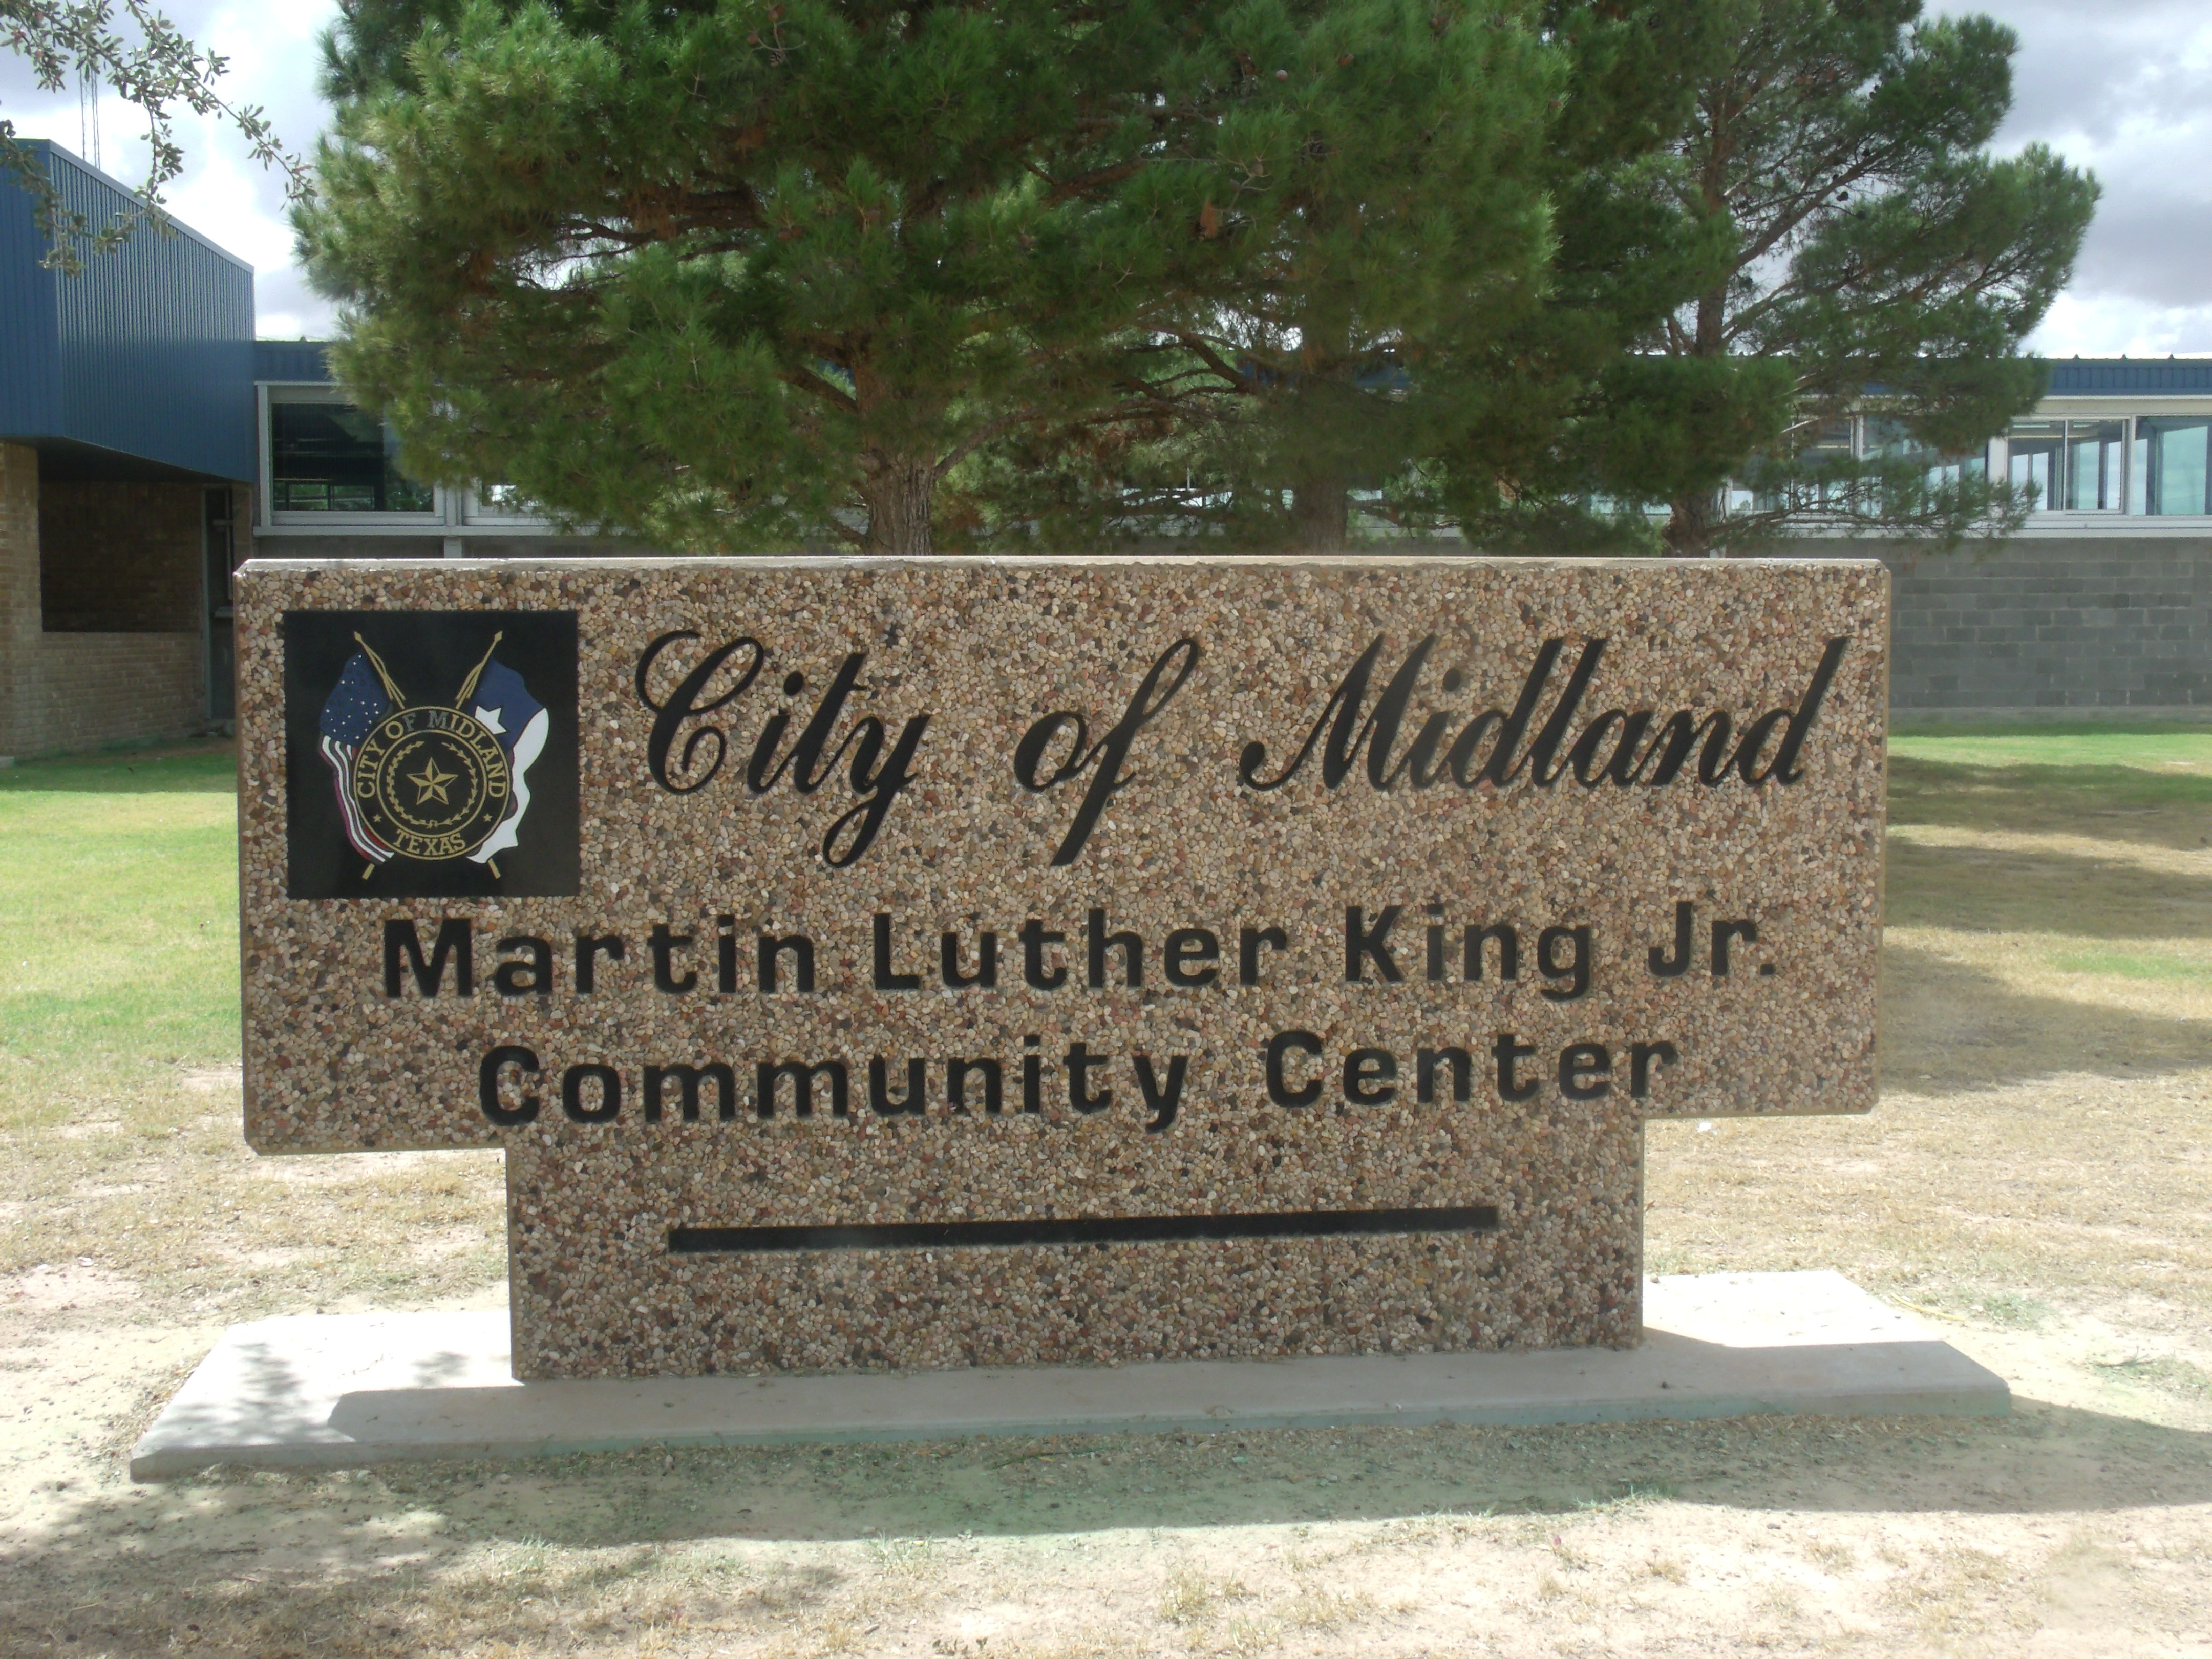 Midland, TX - Official Website